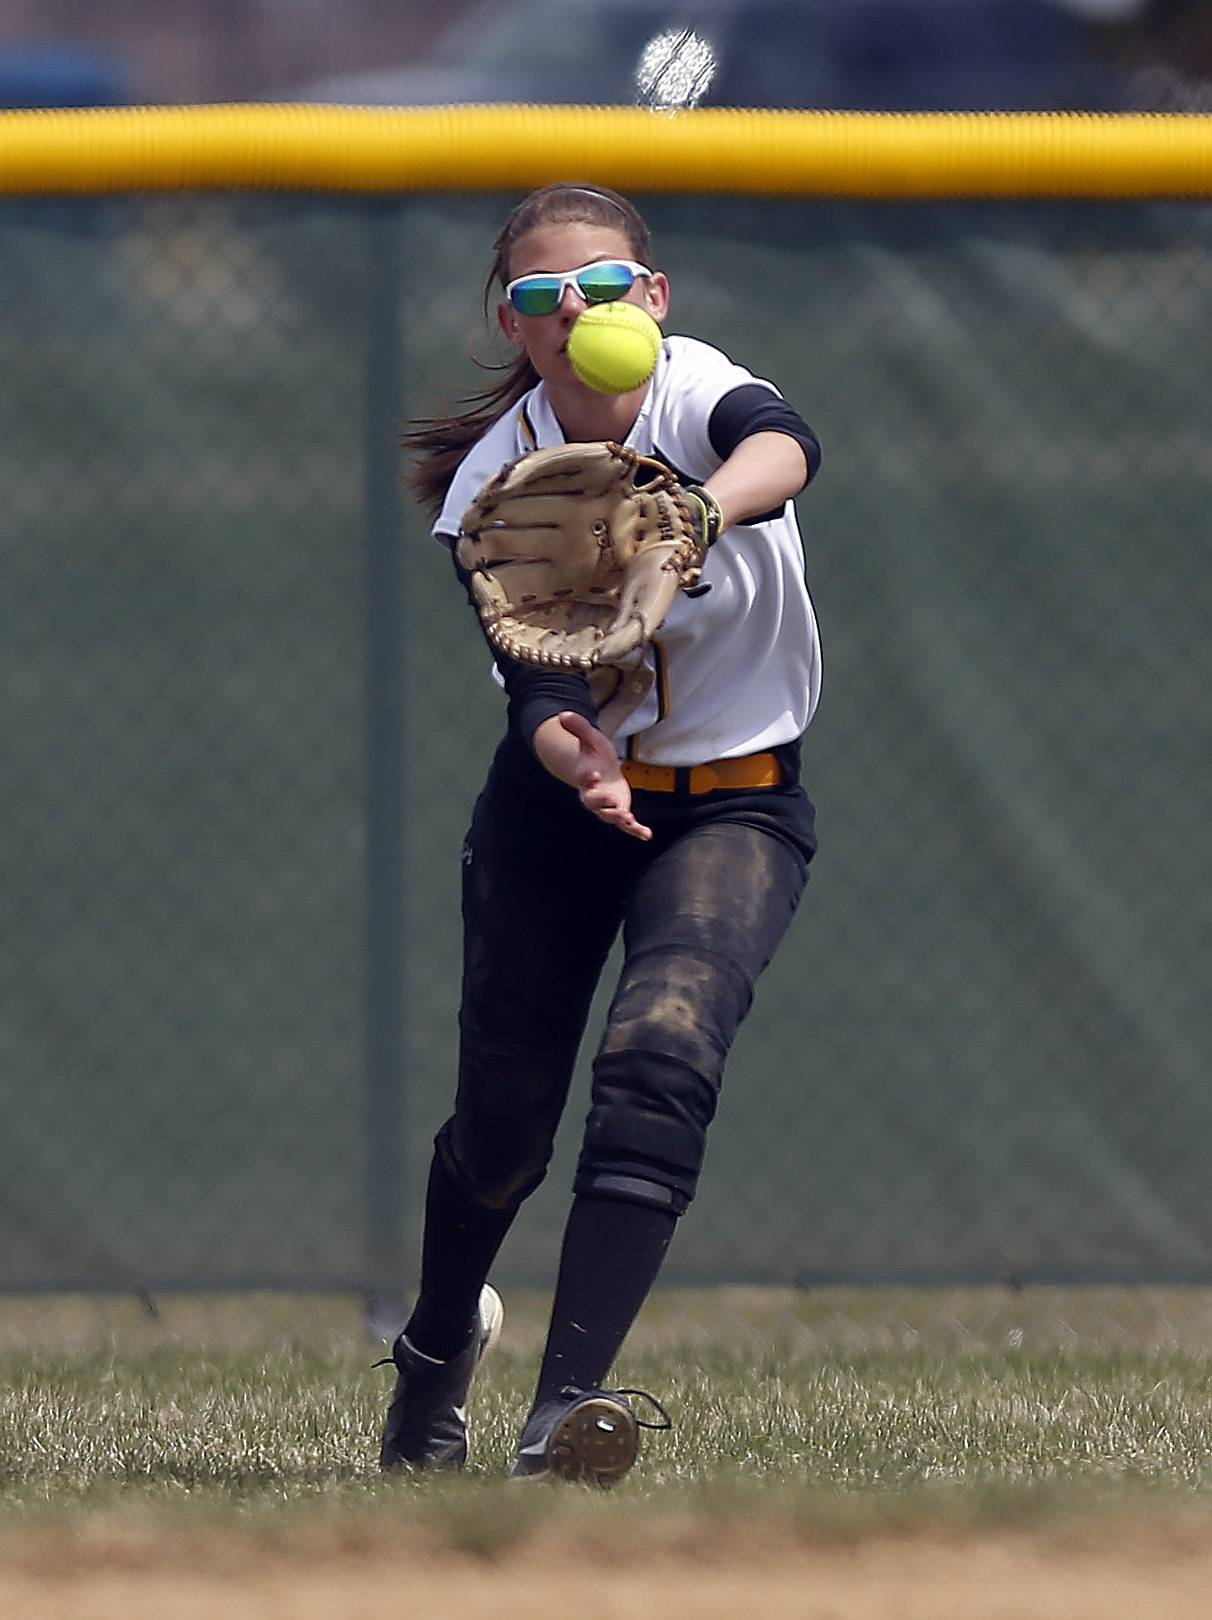 Jacobs outfielder Mackenzie Vaughn reels in a shot by Schaumburg's Christian Candotti on Saturday in Algonquin.